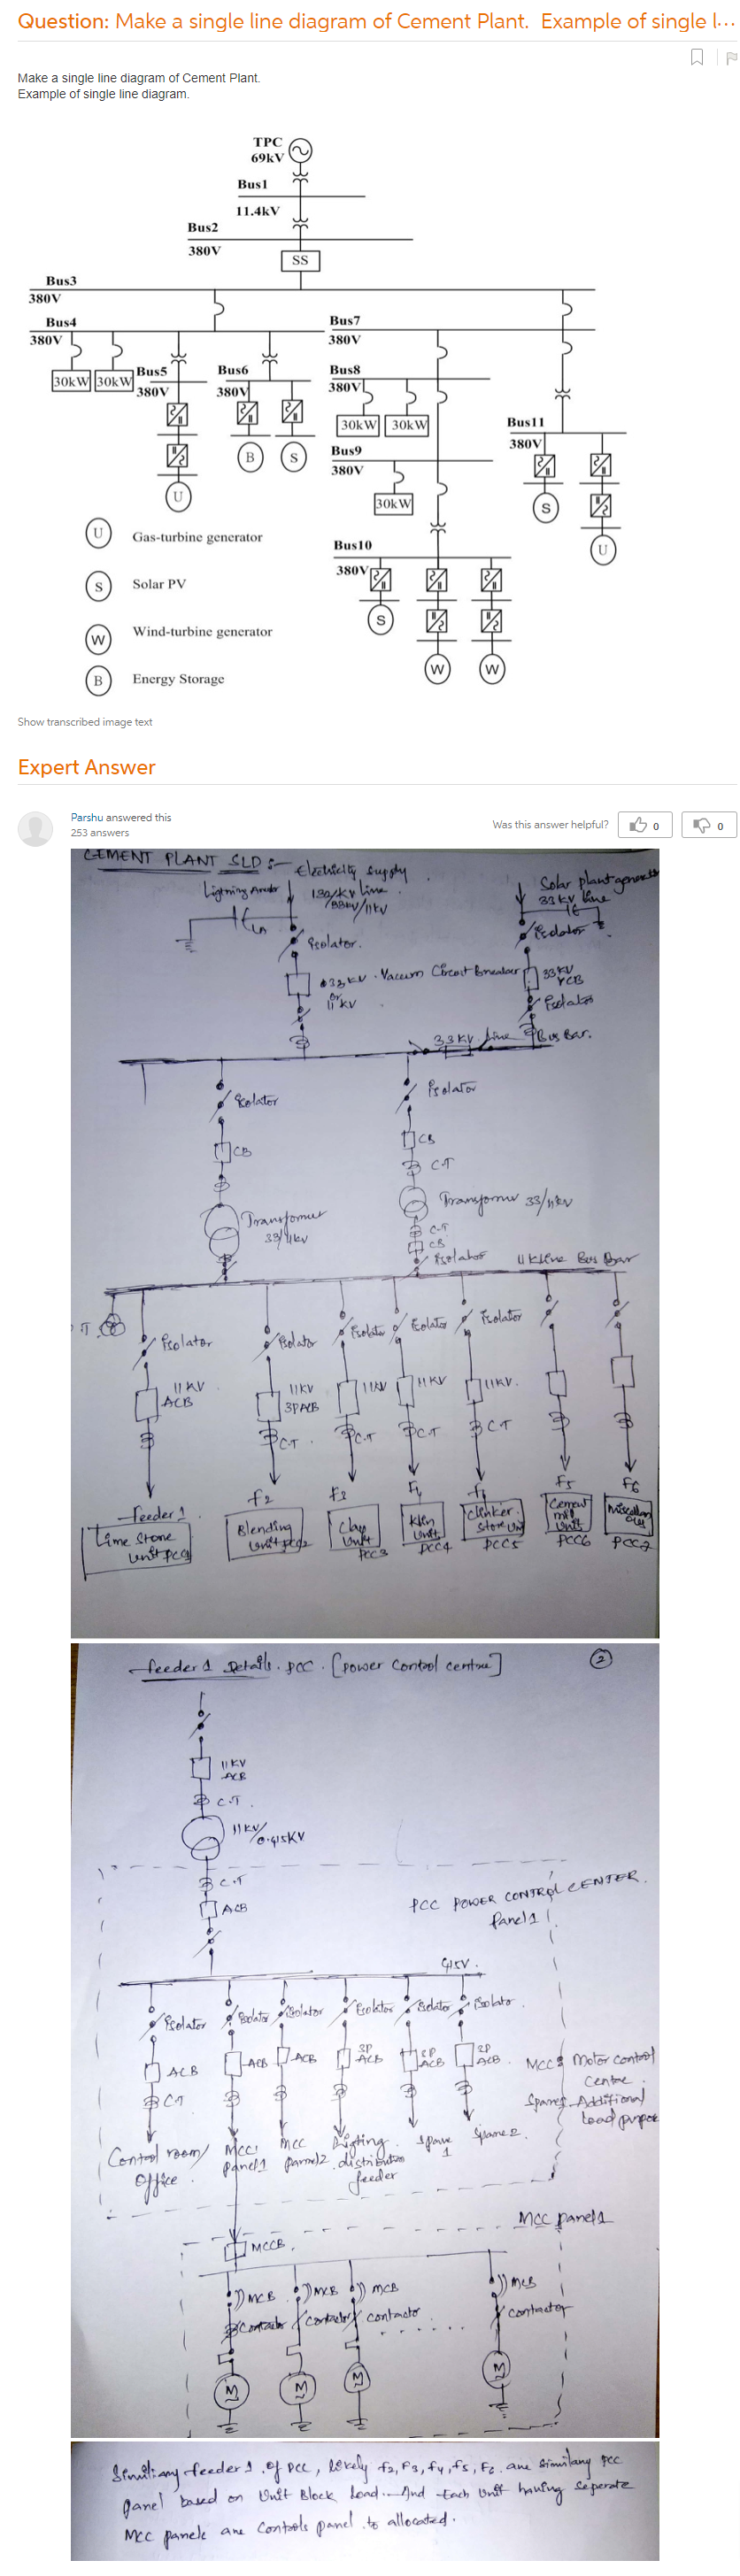 Make A Single Line Diagram Of Cement Plant. Example Of Single Line Diagram.